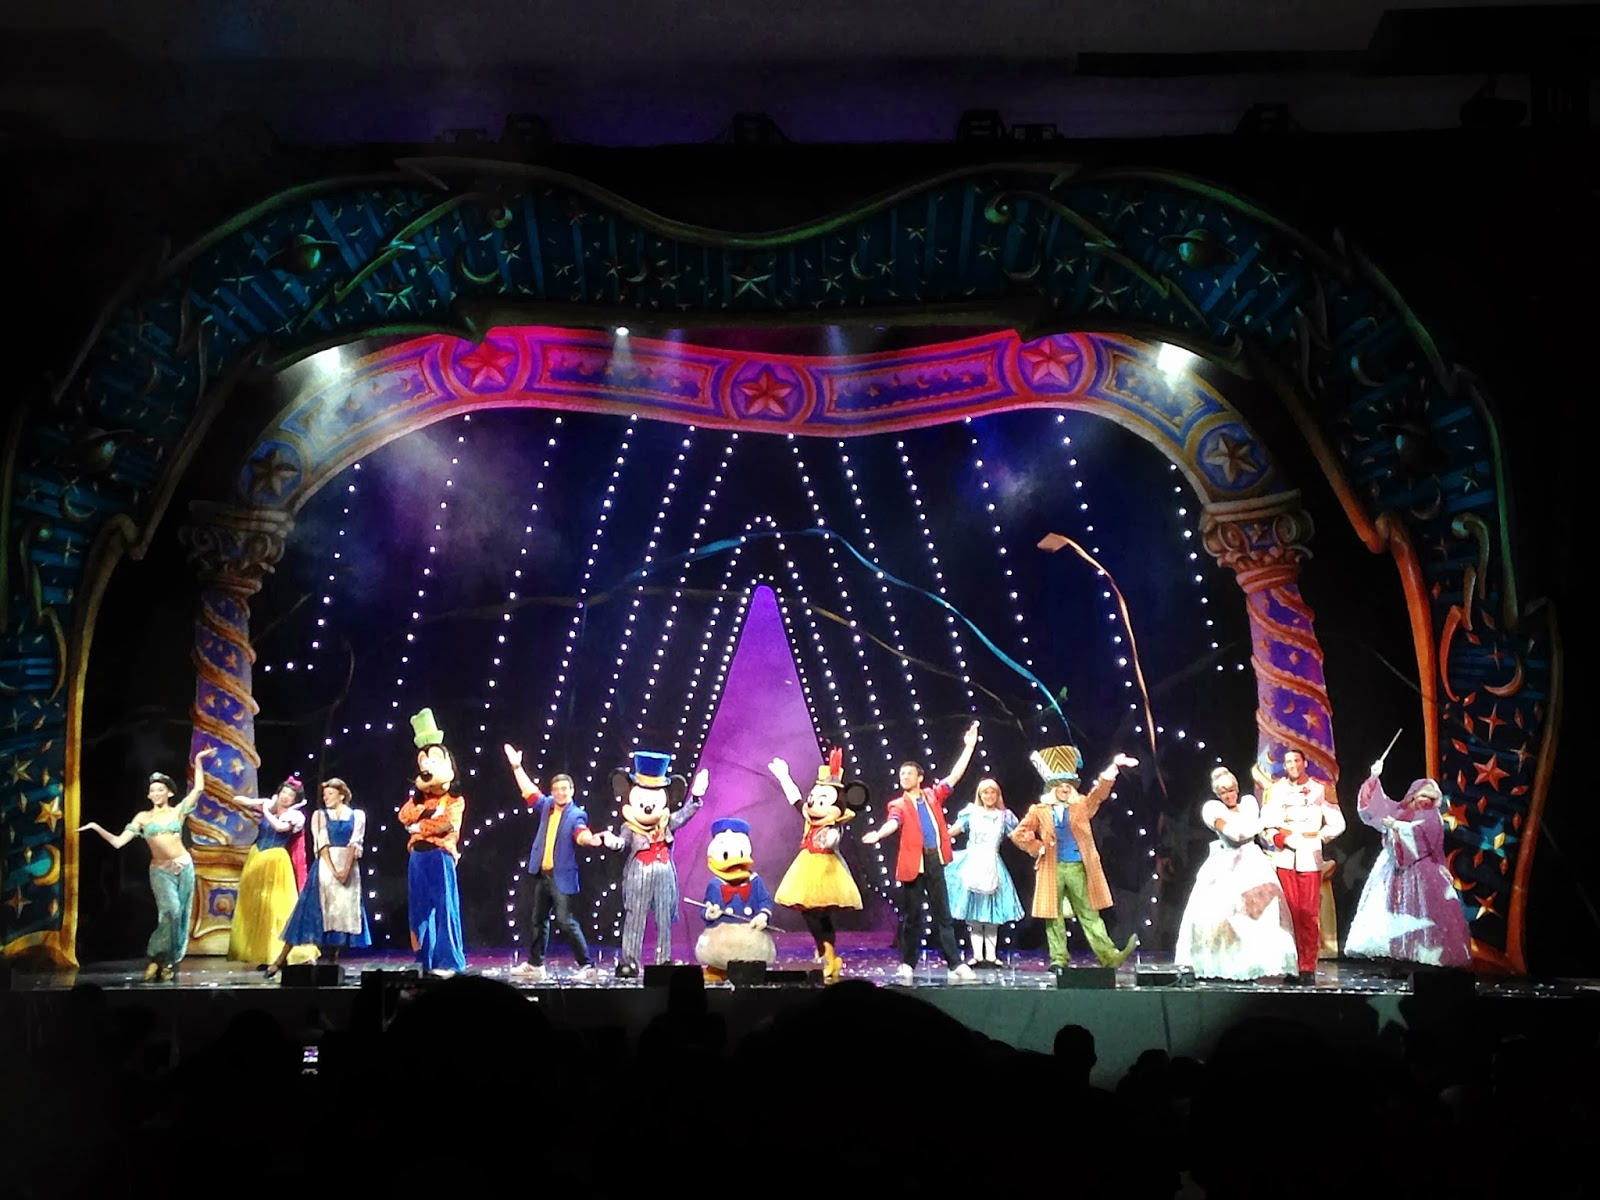 Mickey's Magic Show - presented by Disney Live!, international tour